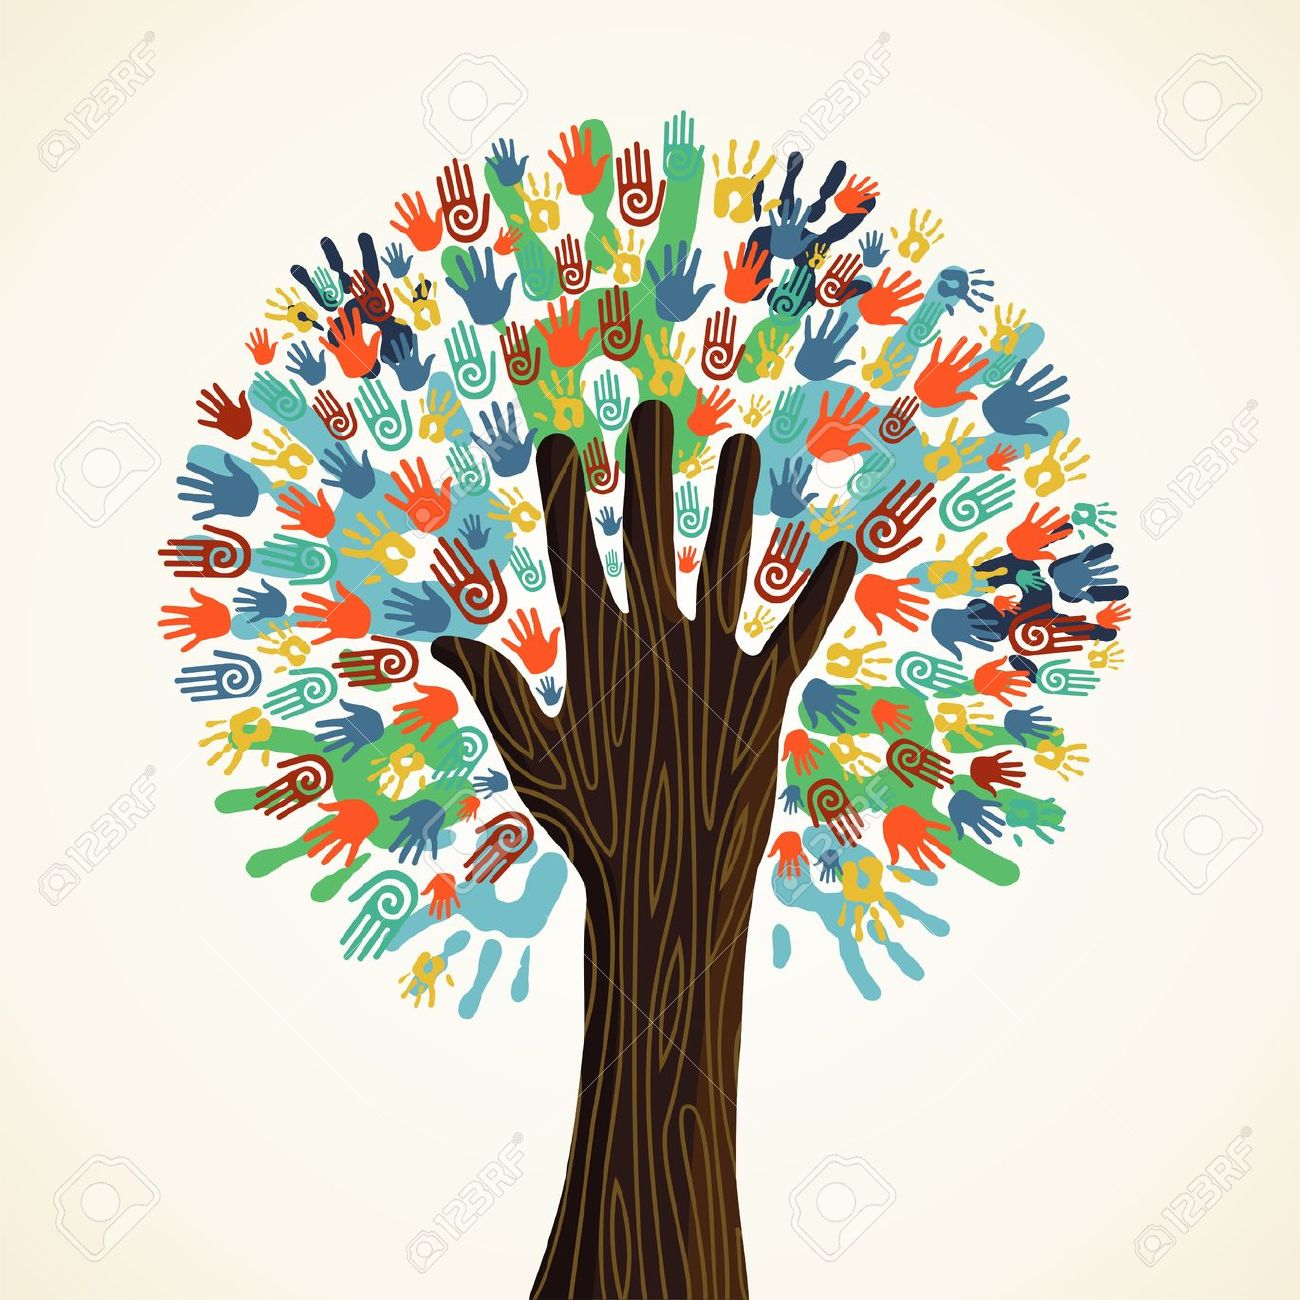 Tree and hands clipart.